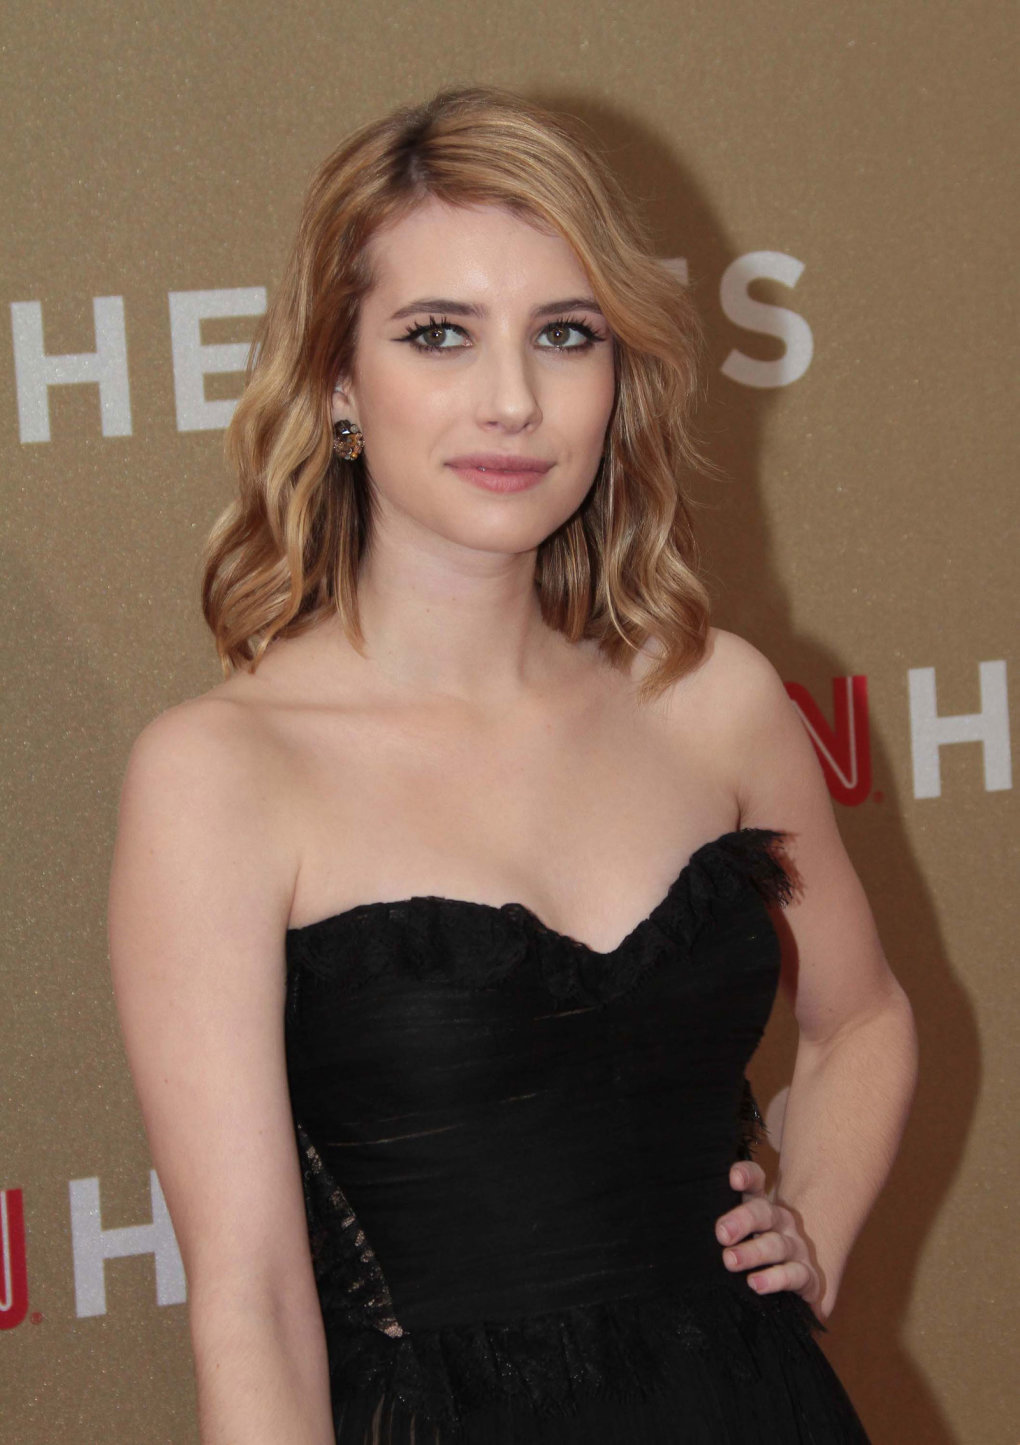 pretty 1 - stunning and talented emma roberts (50+ photos)